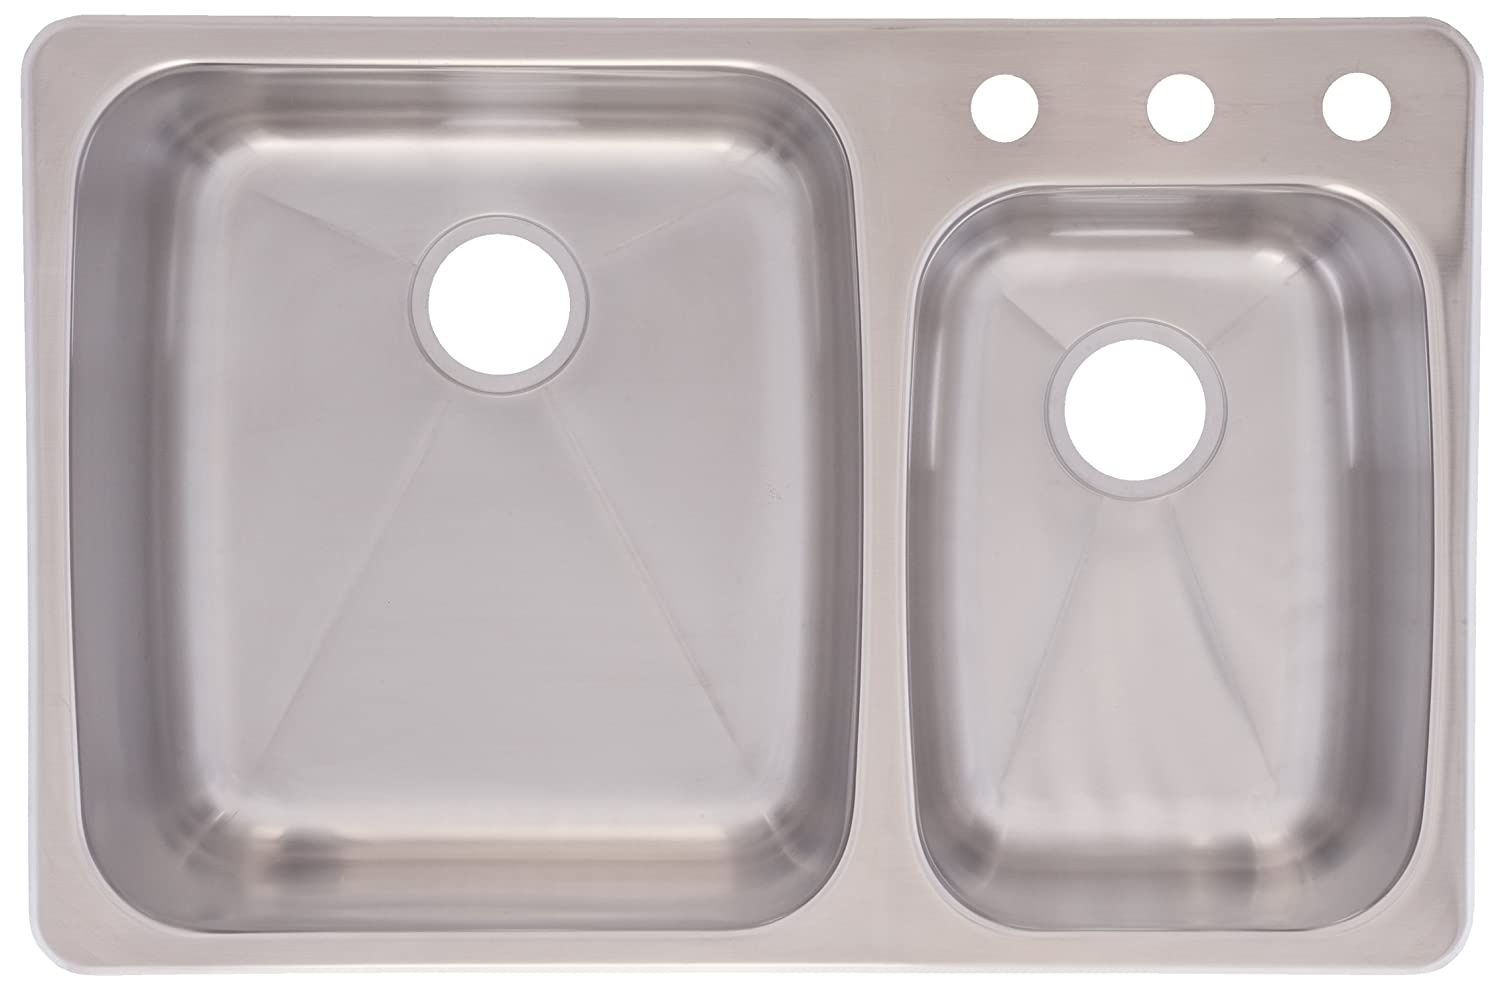 Wonderful Franke C2233R/9 Stainless Steel 33 1/4x 22in. Dualmount Double Bowl Sink    Dualmount Double Bowl Kitchen Sink   Amazon.com